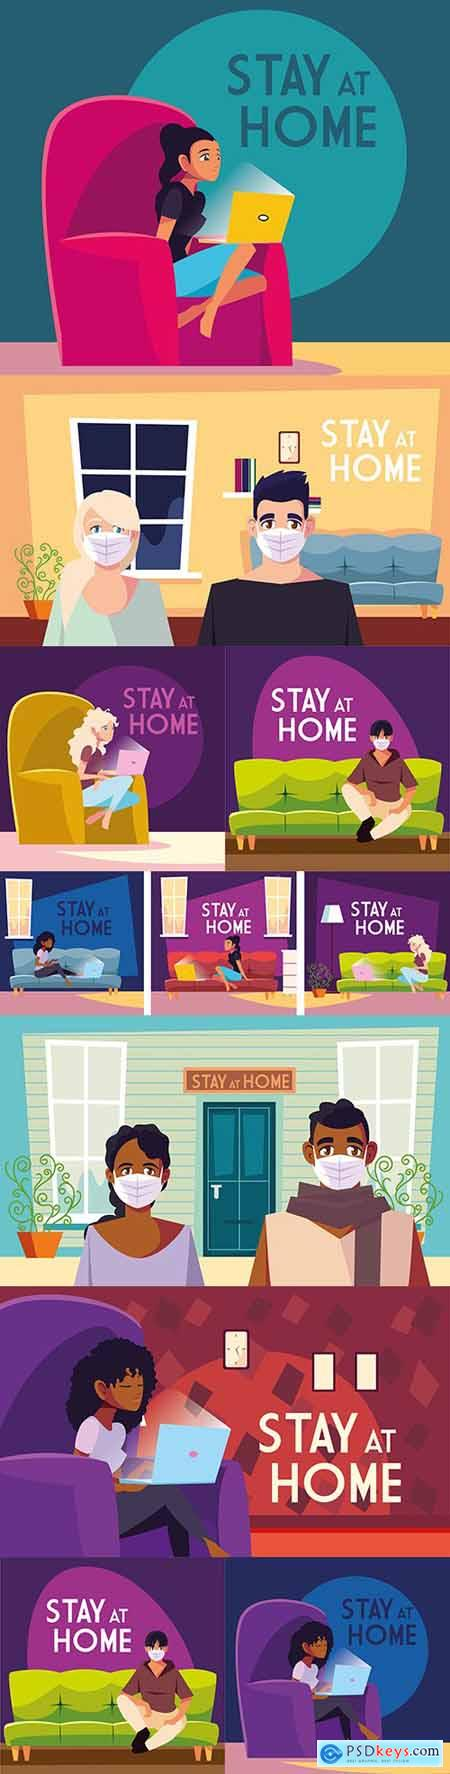 Staying at home on social media and preventing coronavirus